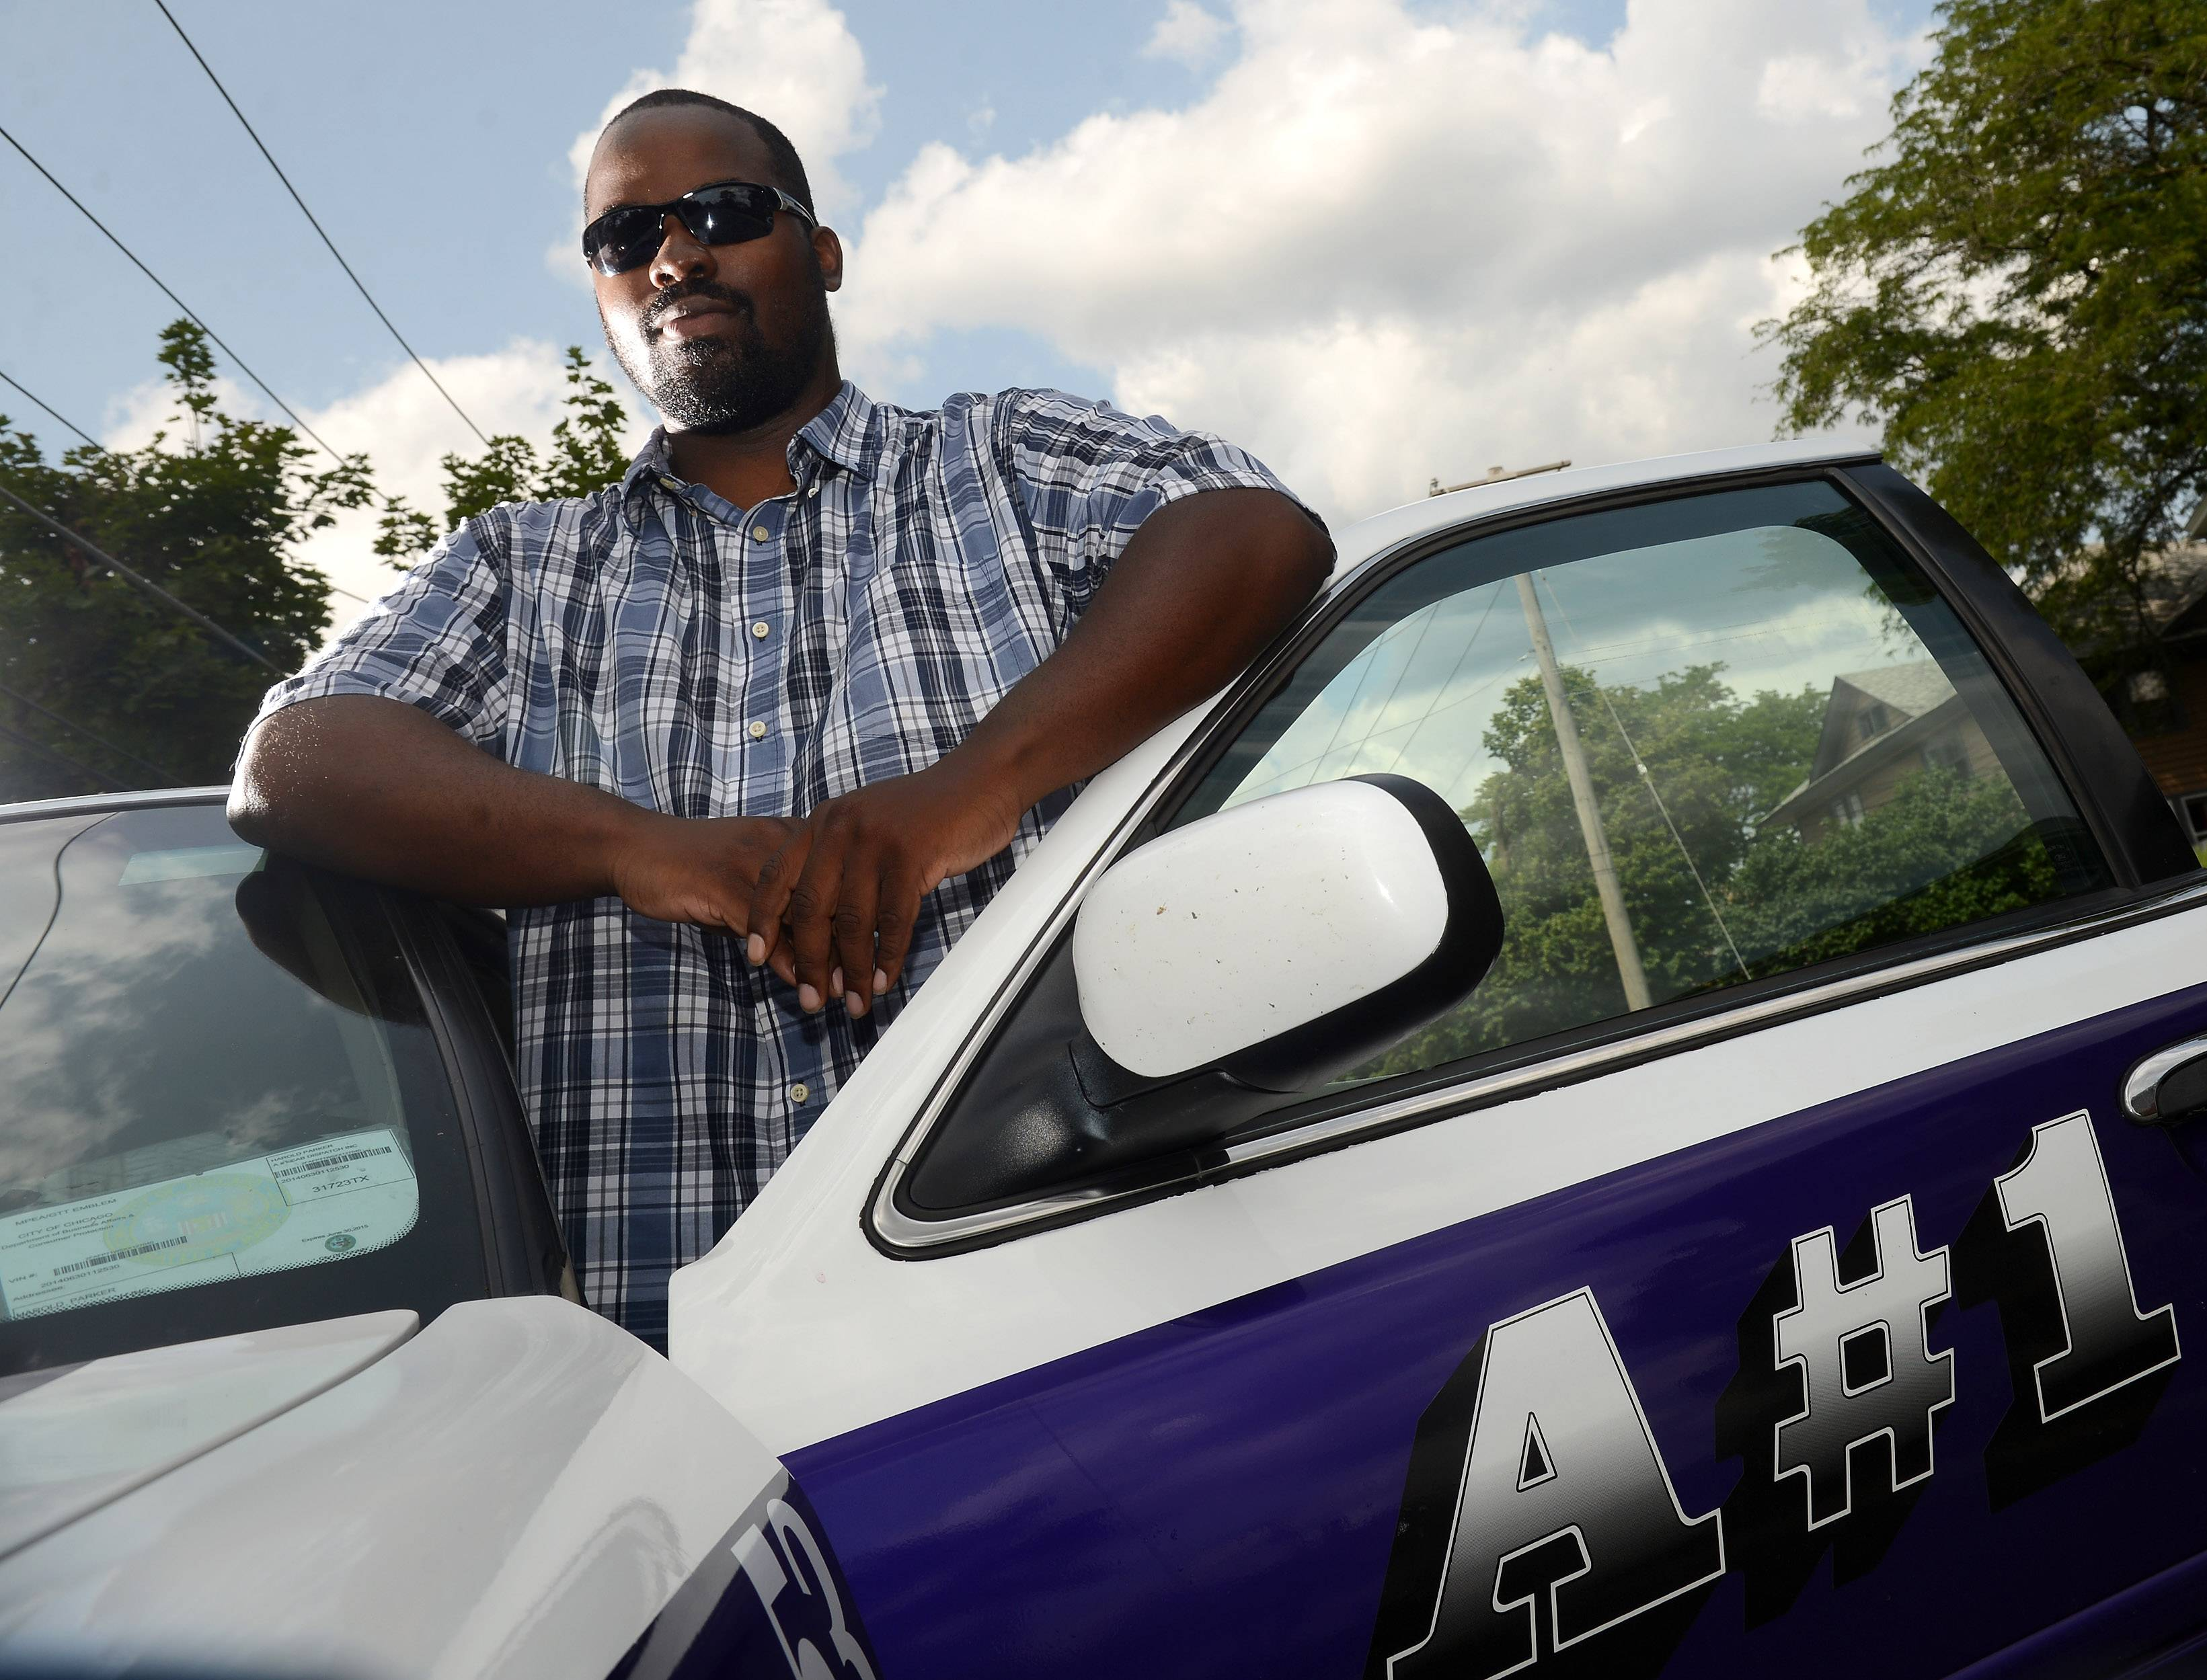 How Elgin cabbie helped capture mental health center escapee